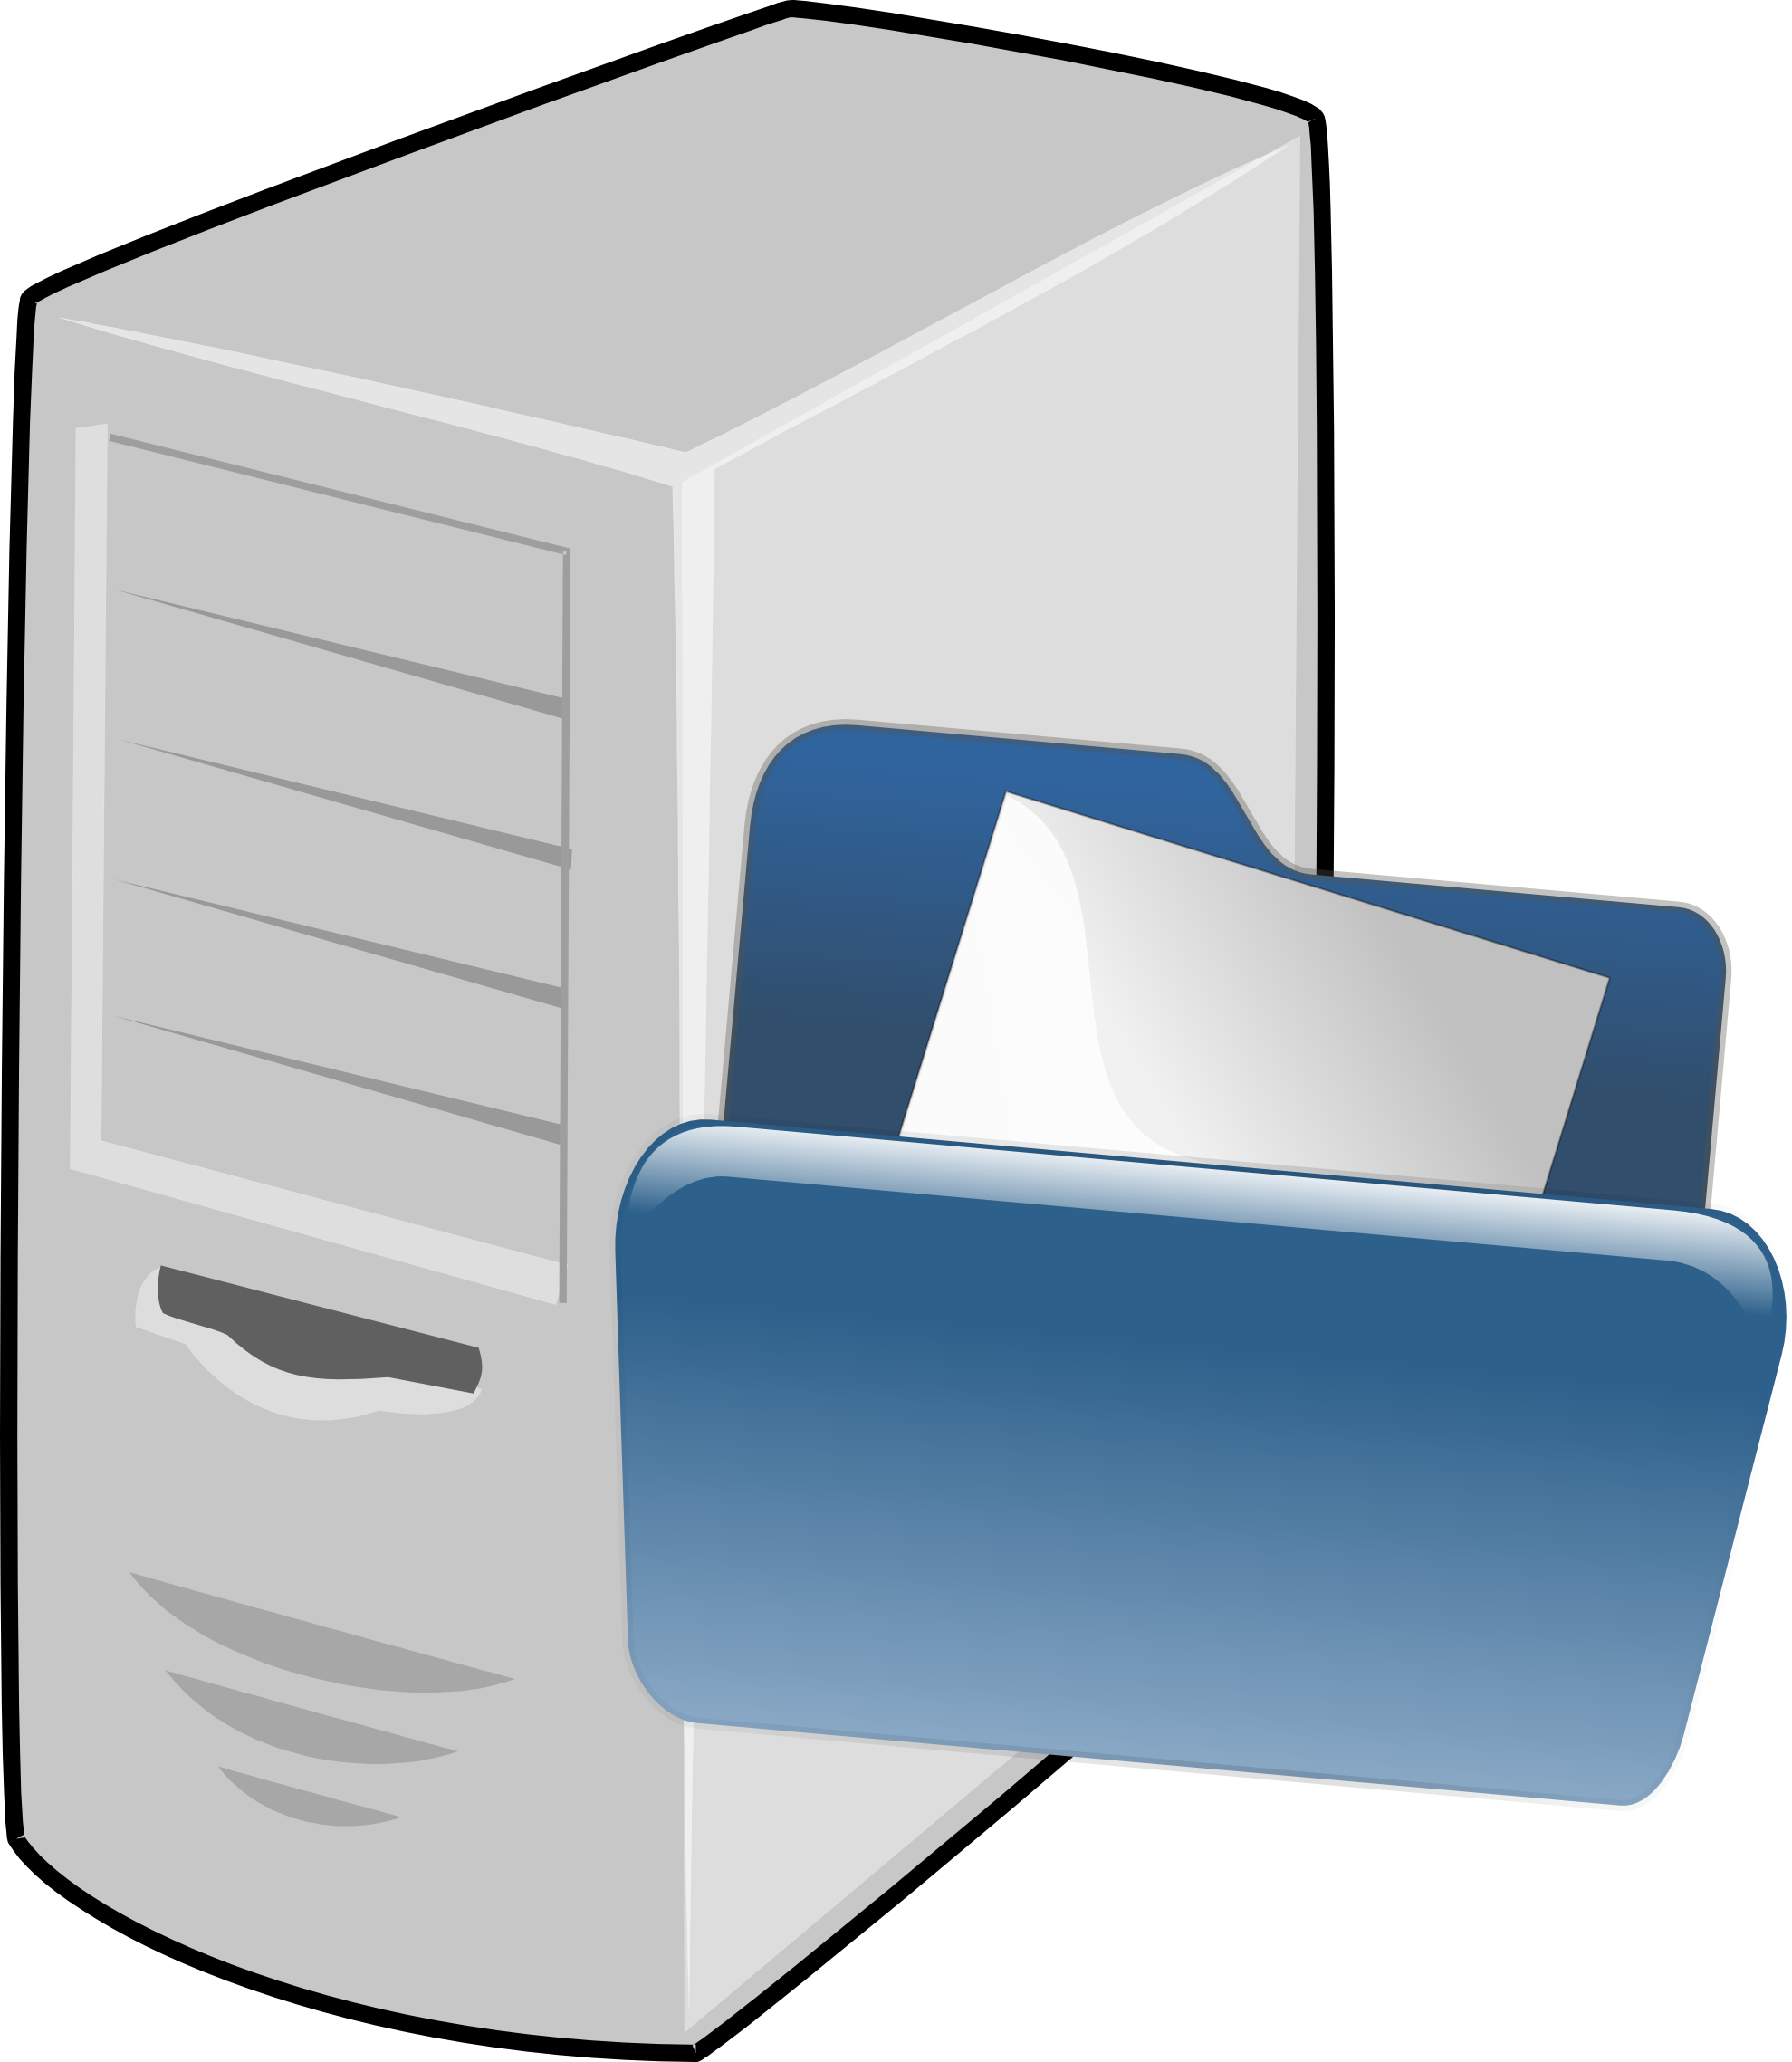 Web Server Icon Png - ClipArt Best